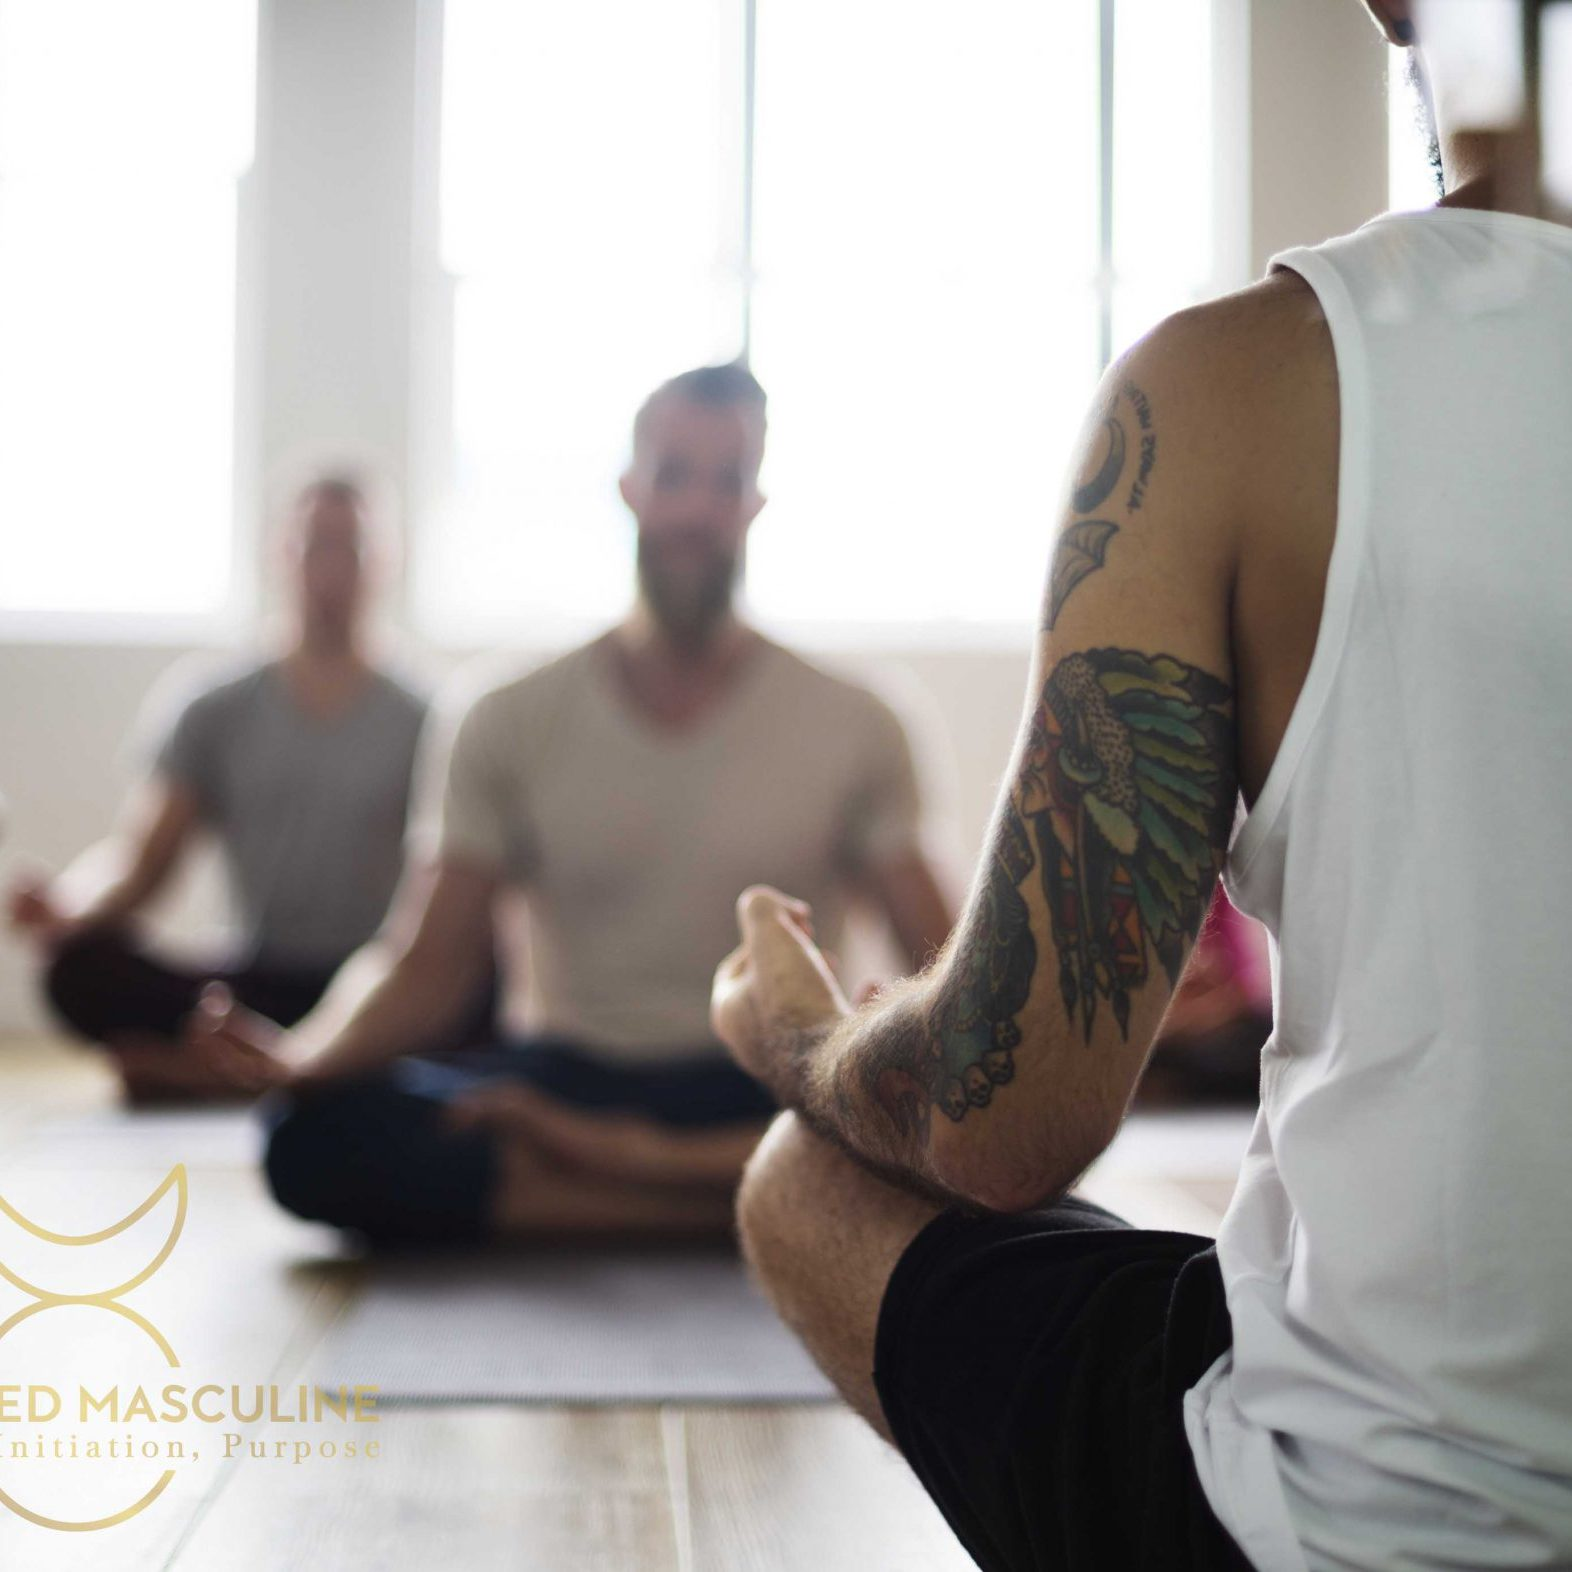 Learn meditation at EmbodiedMasculine.com Workshops